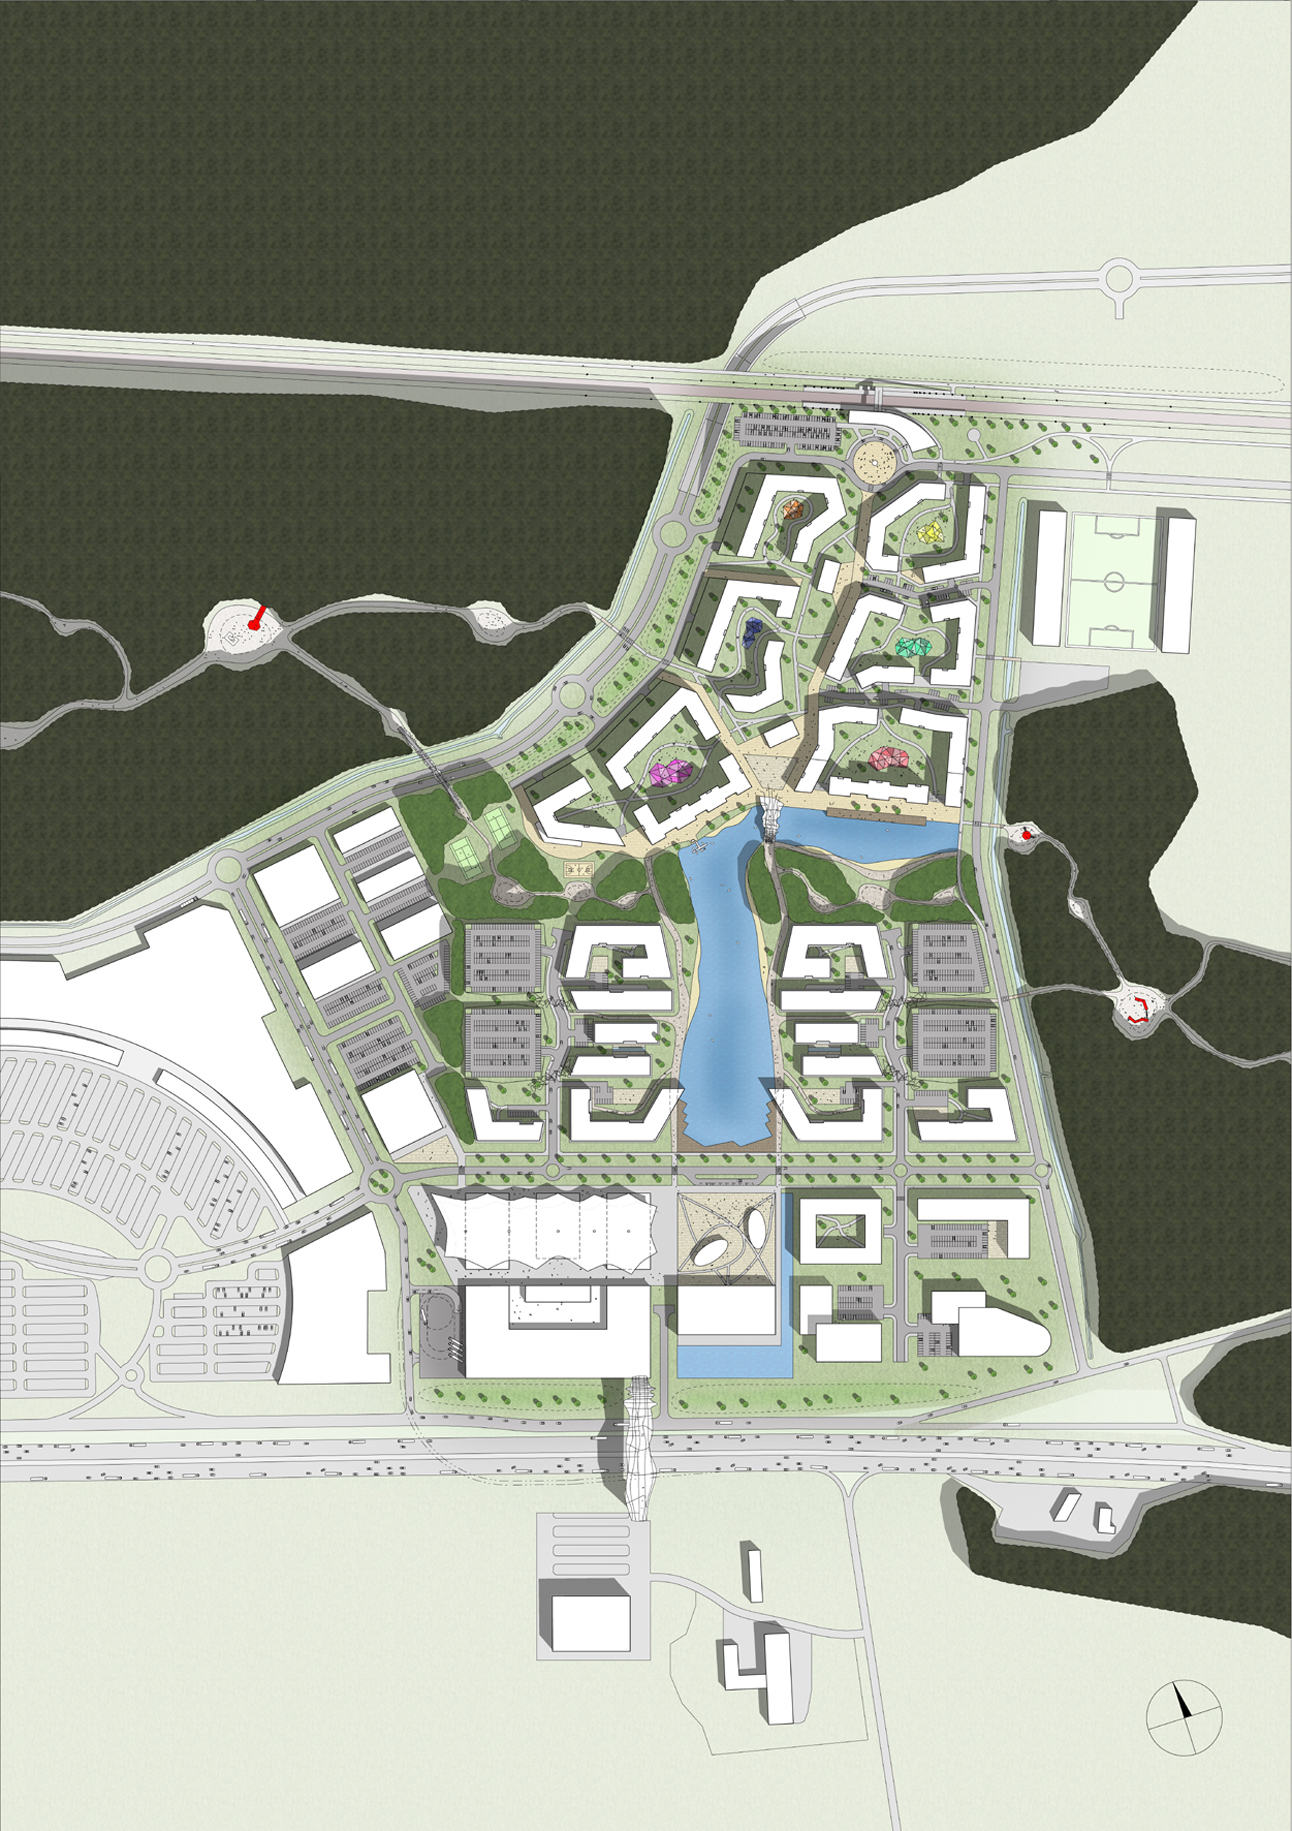 Latvia East Jurmala Masterplan